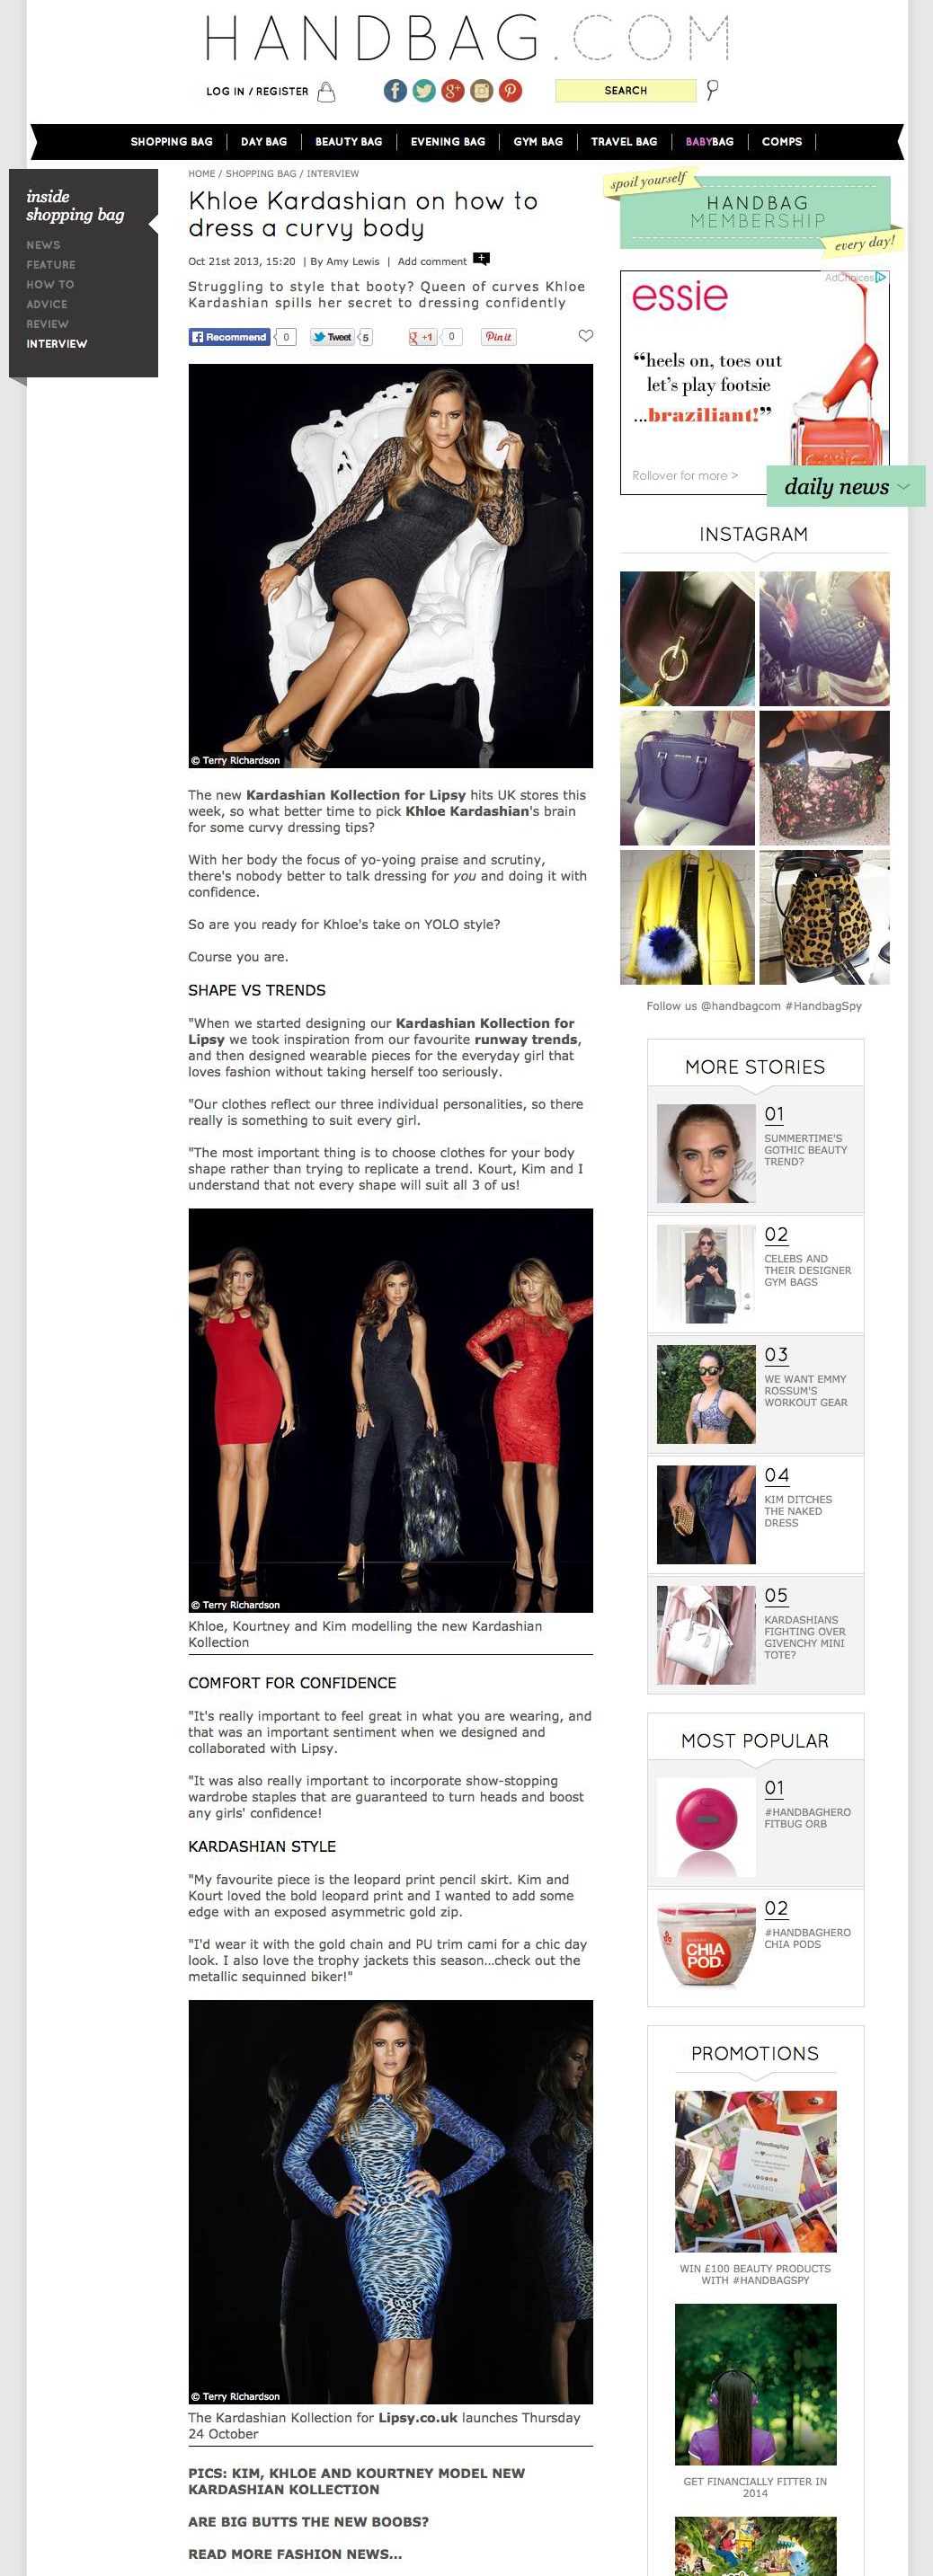 Khloe_Kardashian_on_how_to_dress_a_curvy_body_-_Shopping_Bag_Interview_-_handbag.com_-_2014-07-31_12.19.48.png